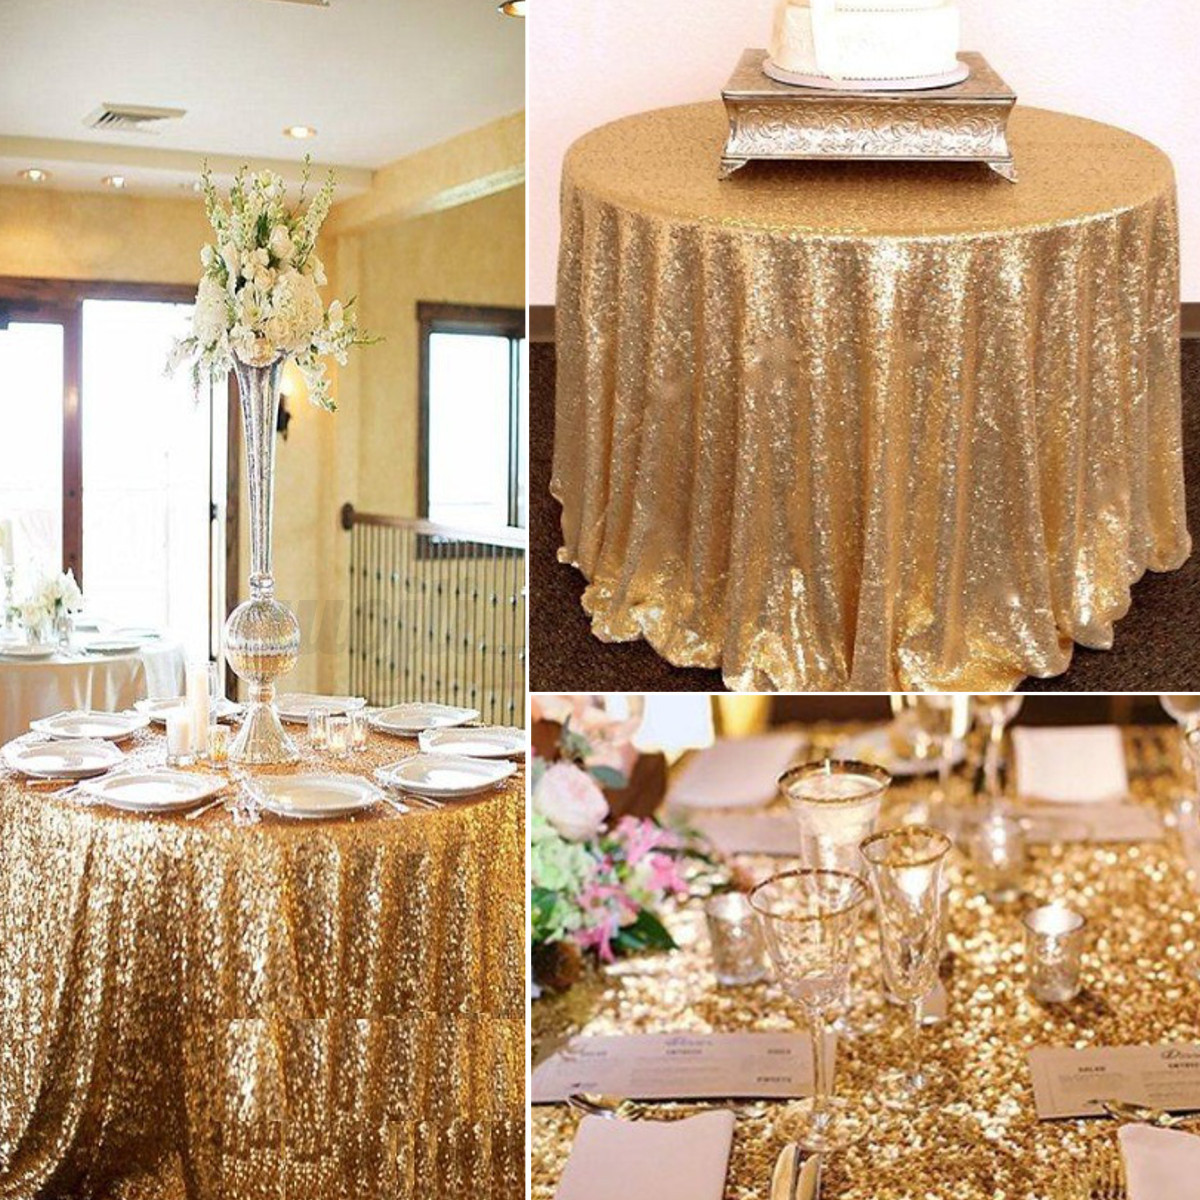 120cm round sparkly sequin banquet tablecloth for wedding event image is loading 120cm round sparkly sequin banquet tablecloth for wedding junglespirit Choice Image